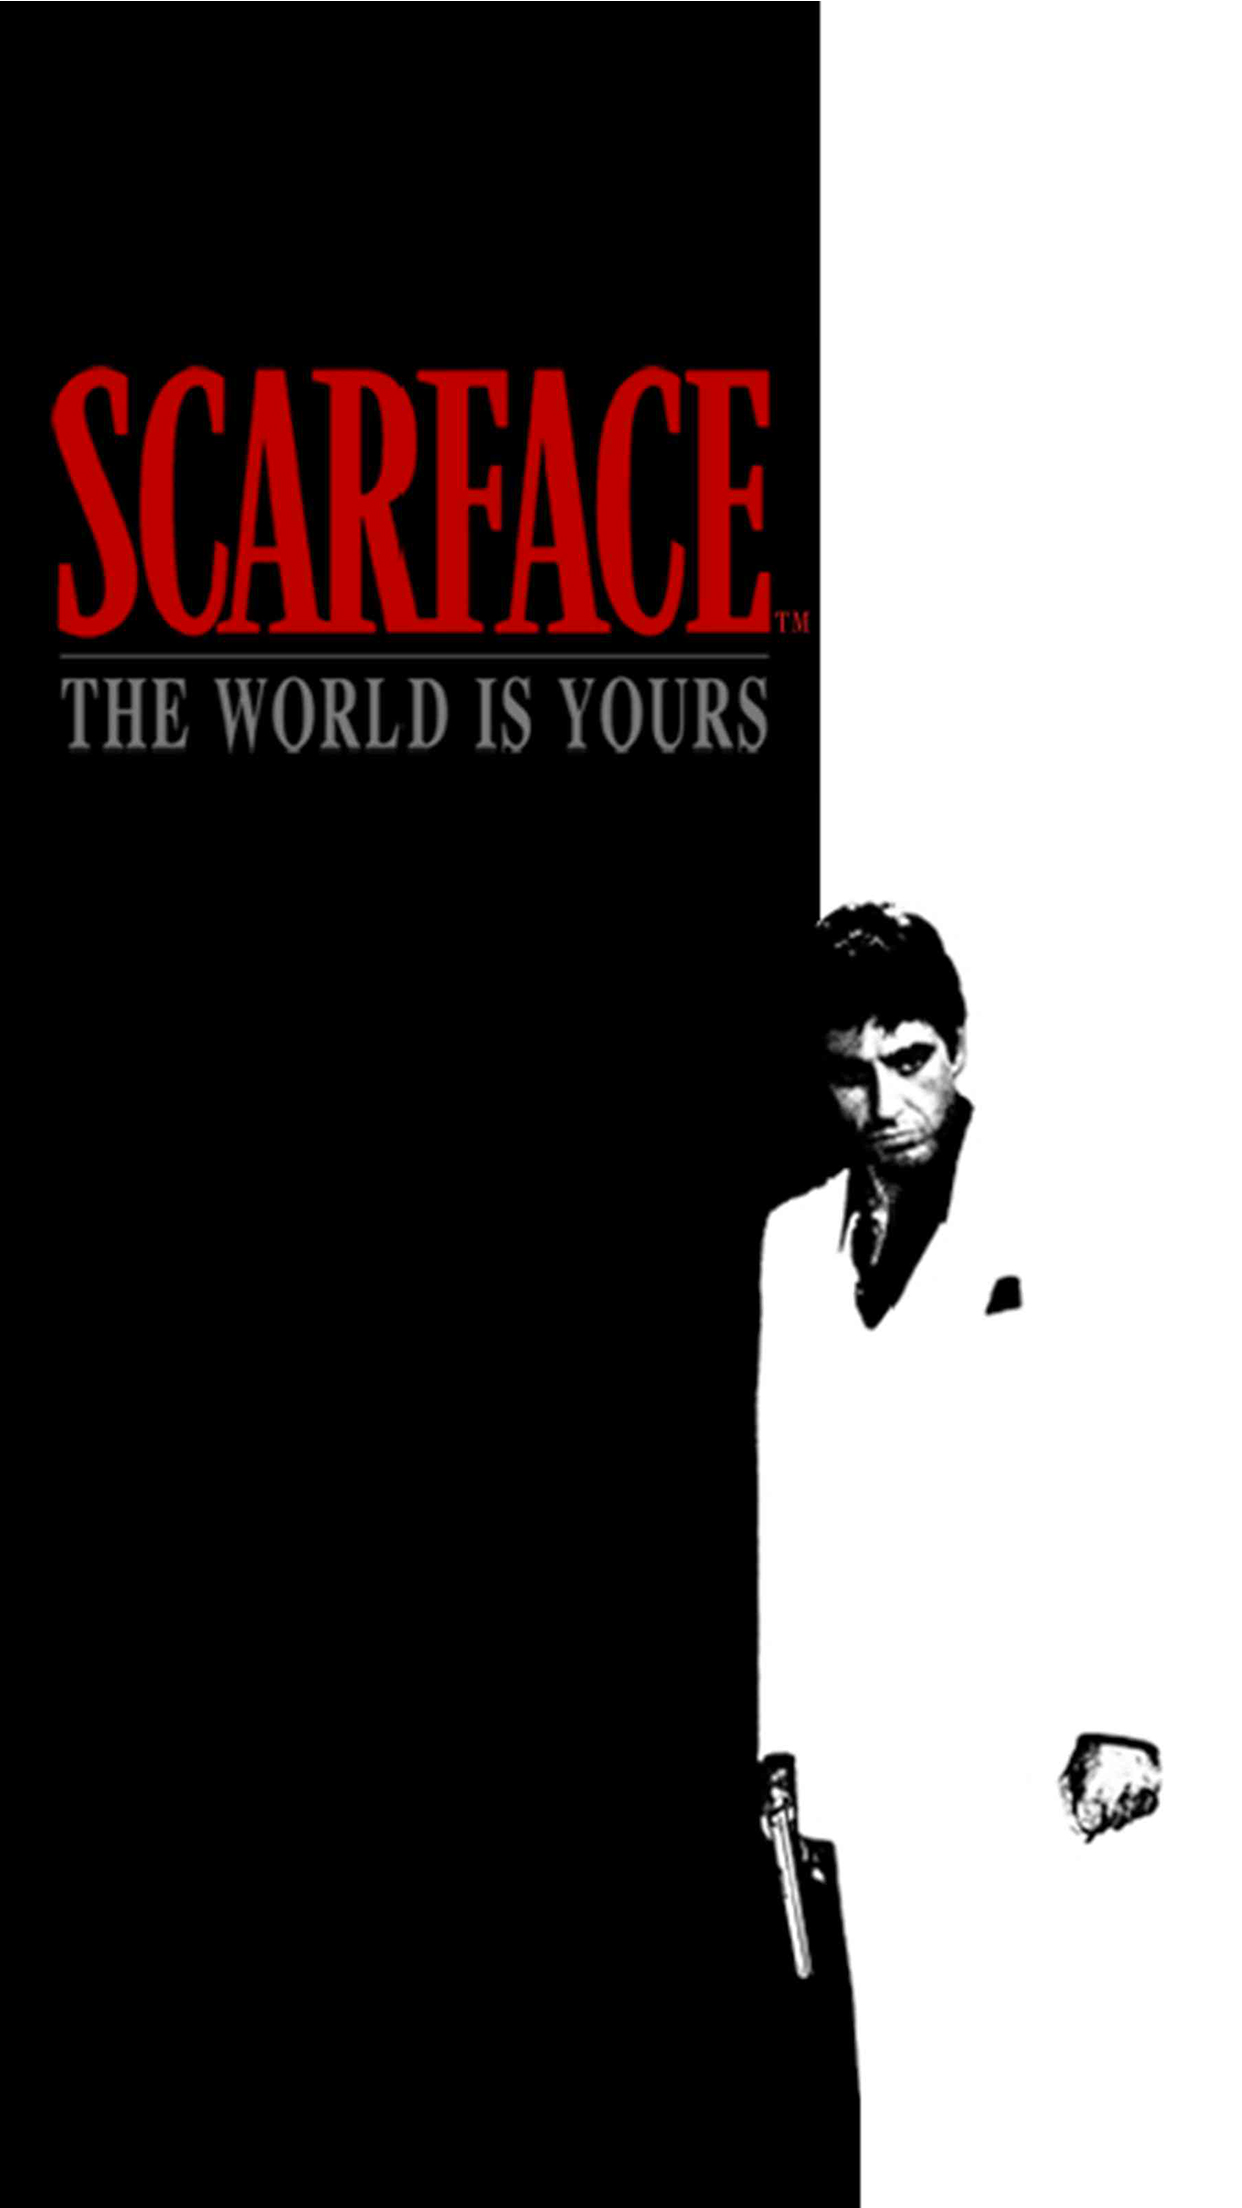 scarface wallpaper for iphone x 8 7 6 free download